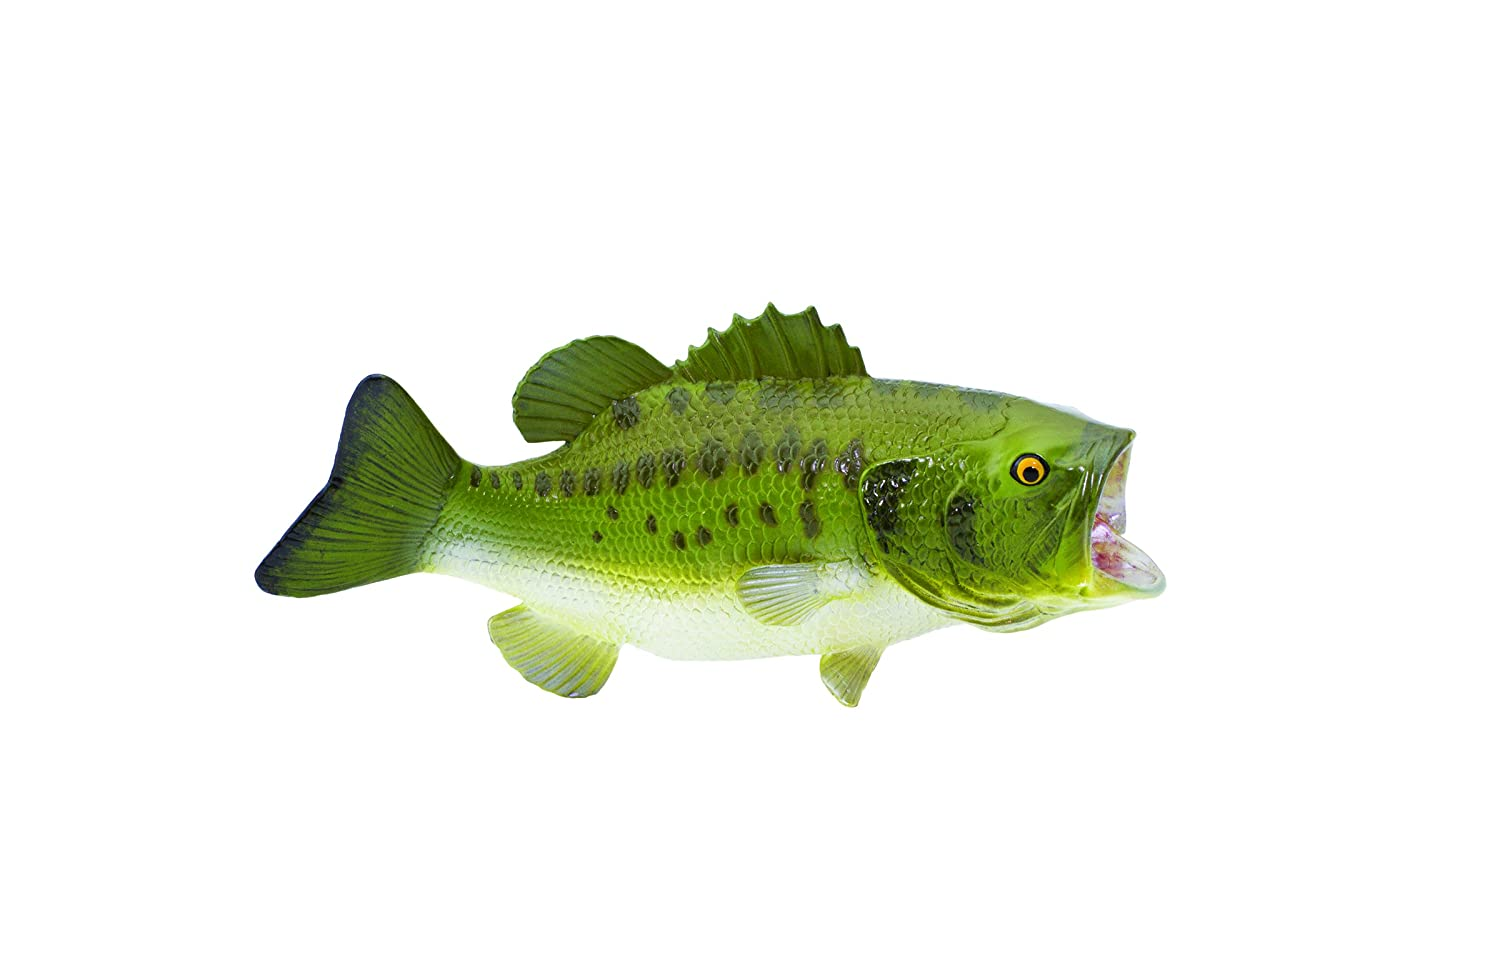 Amazon.com: Incredible Creatures: Large Mouth Bass: Toys & Games